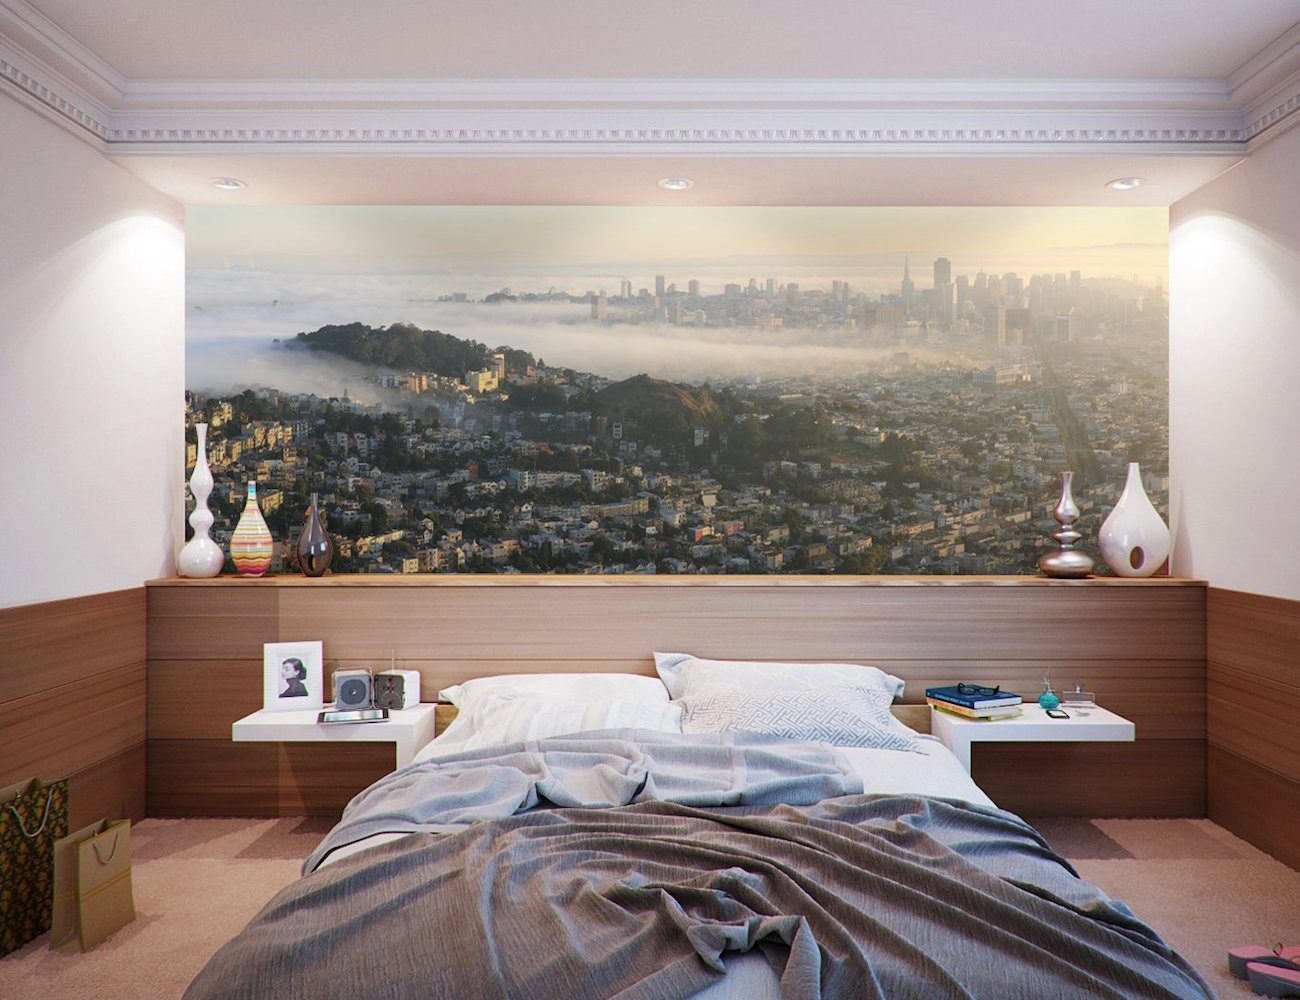 san francisco panoramic skyline wall mural by eazywallz san francisco panoramic skyline wall mural by eazywallz